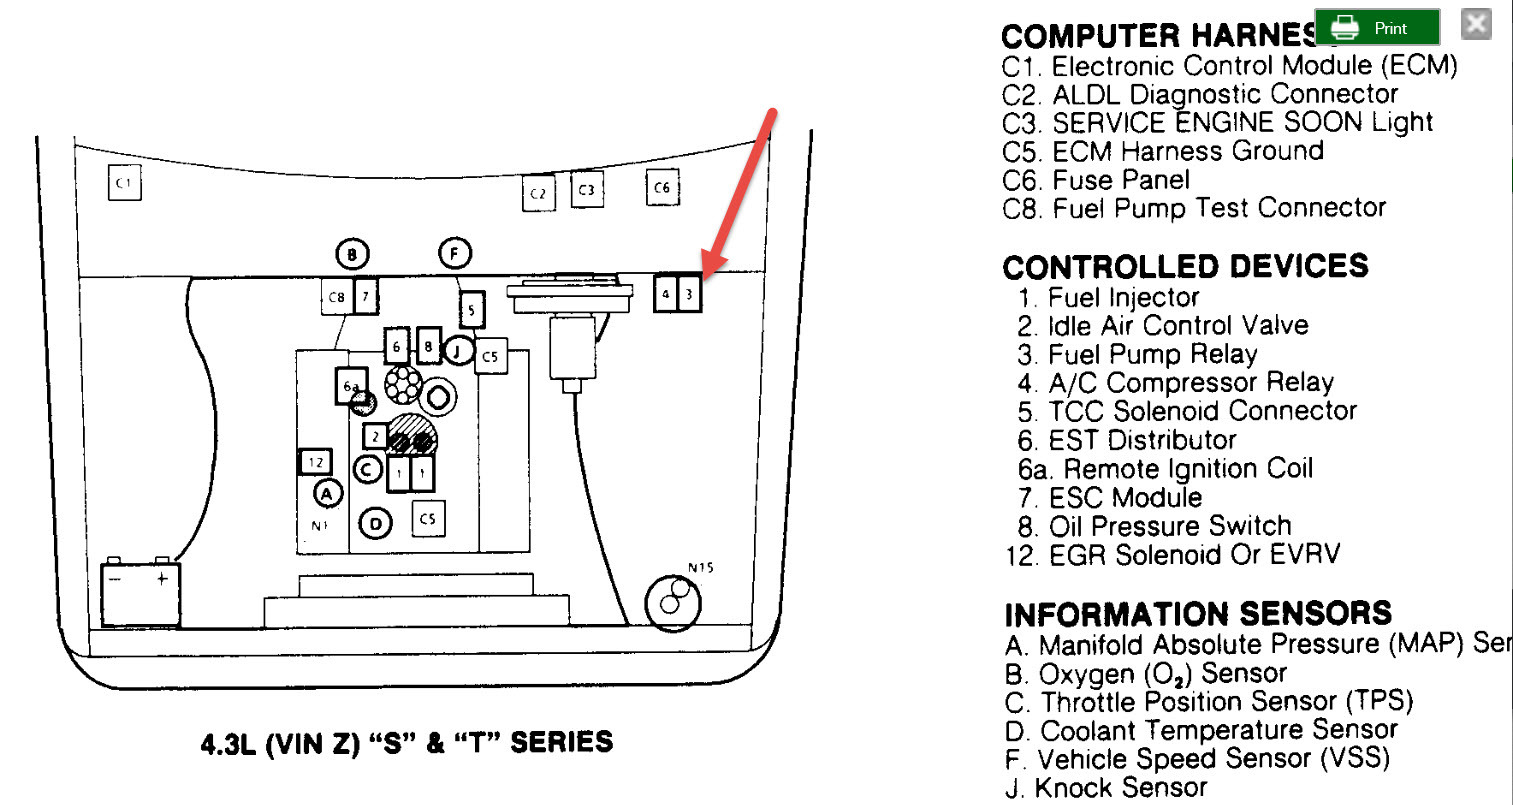 esc diagram 1993 chevrolet data wiring diagram today Stepper Motor Diagram esc diagram 1992 chevrolet on wiring diagram quadcopter diagram esc diagram 1993 chevrolet